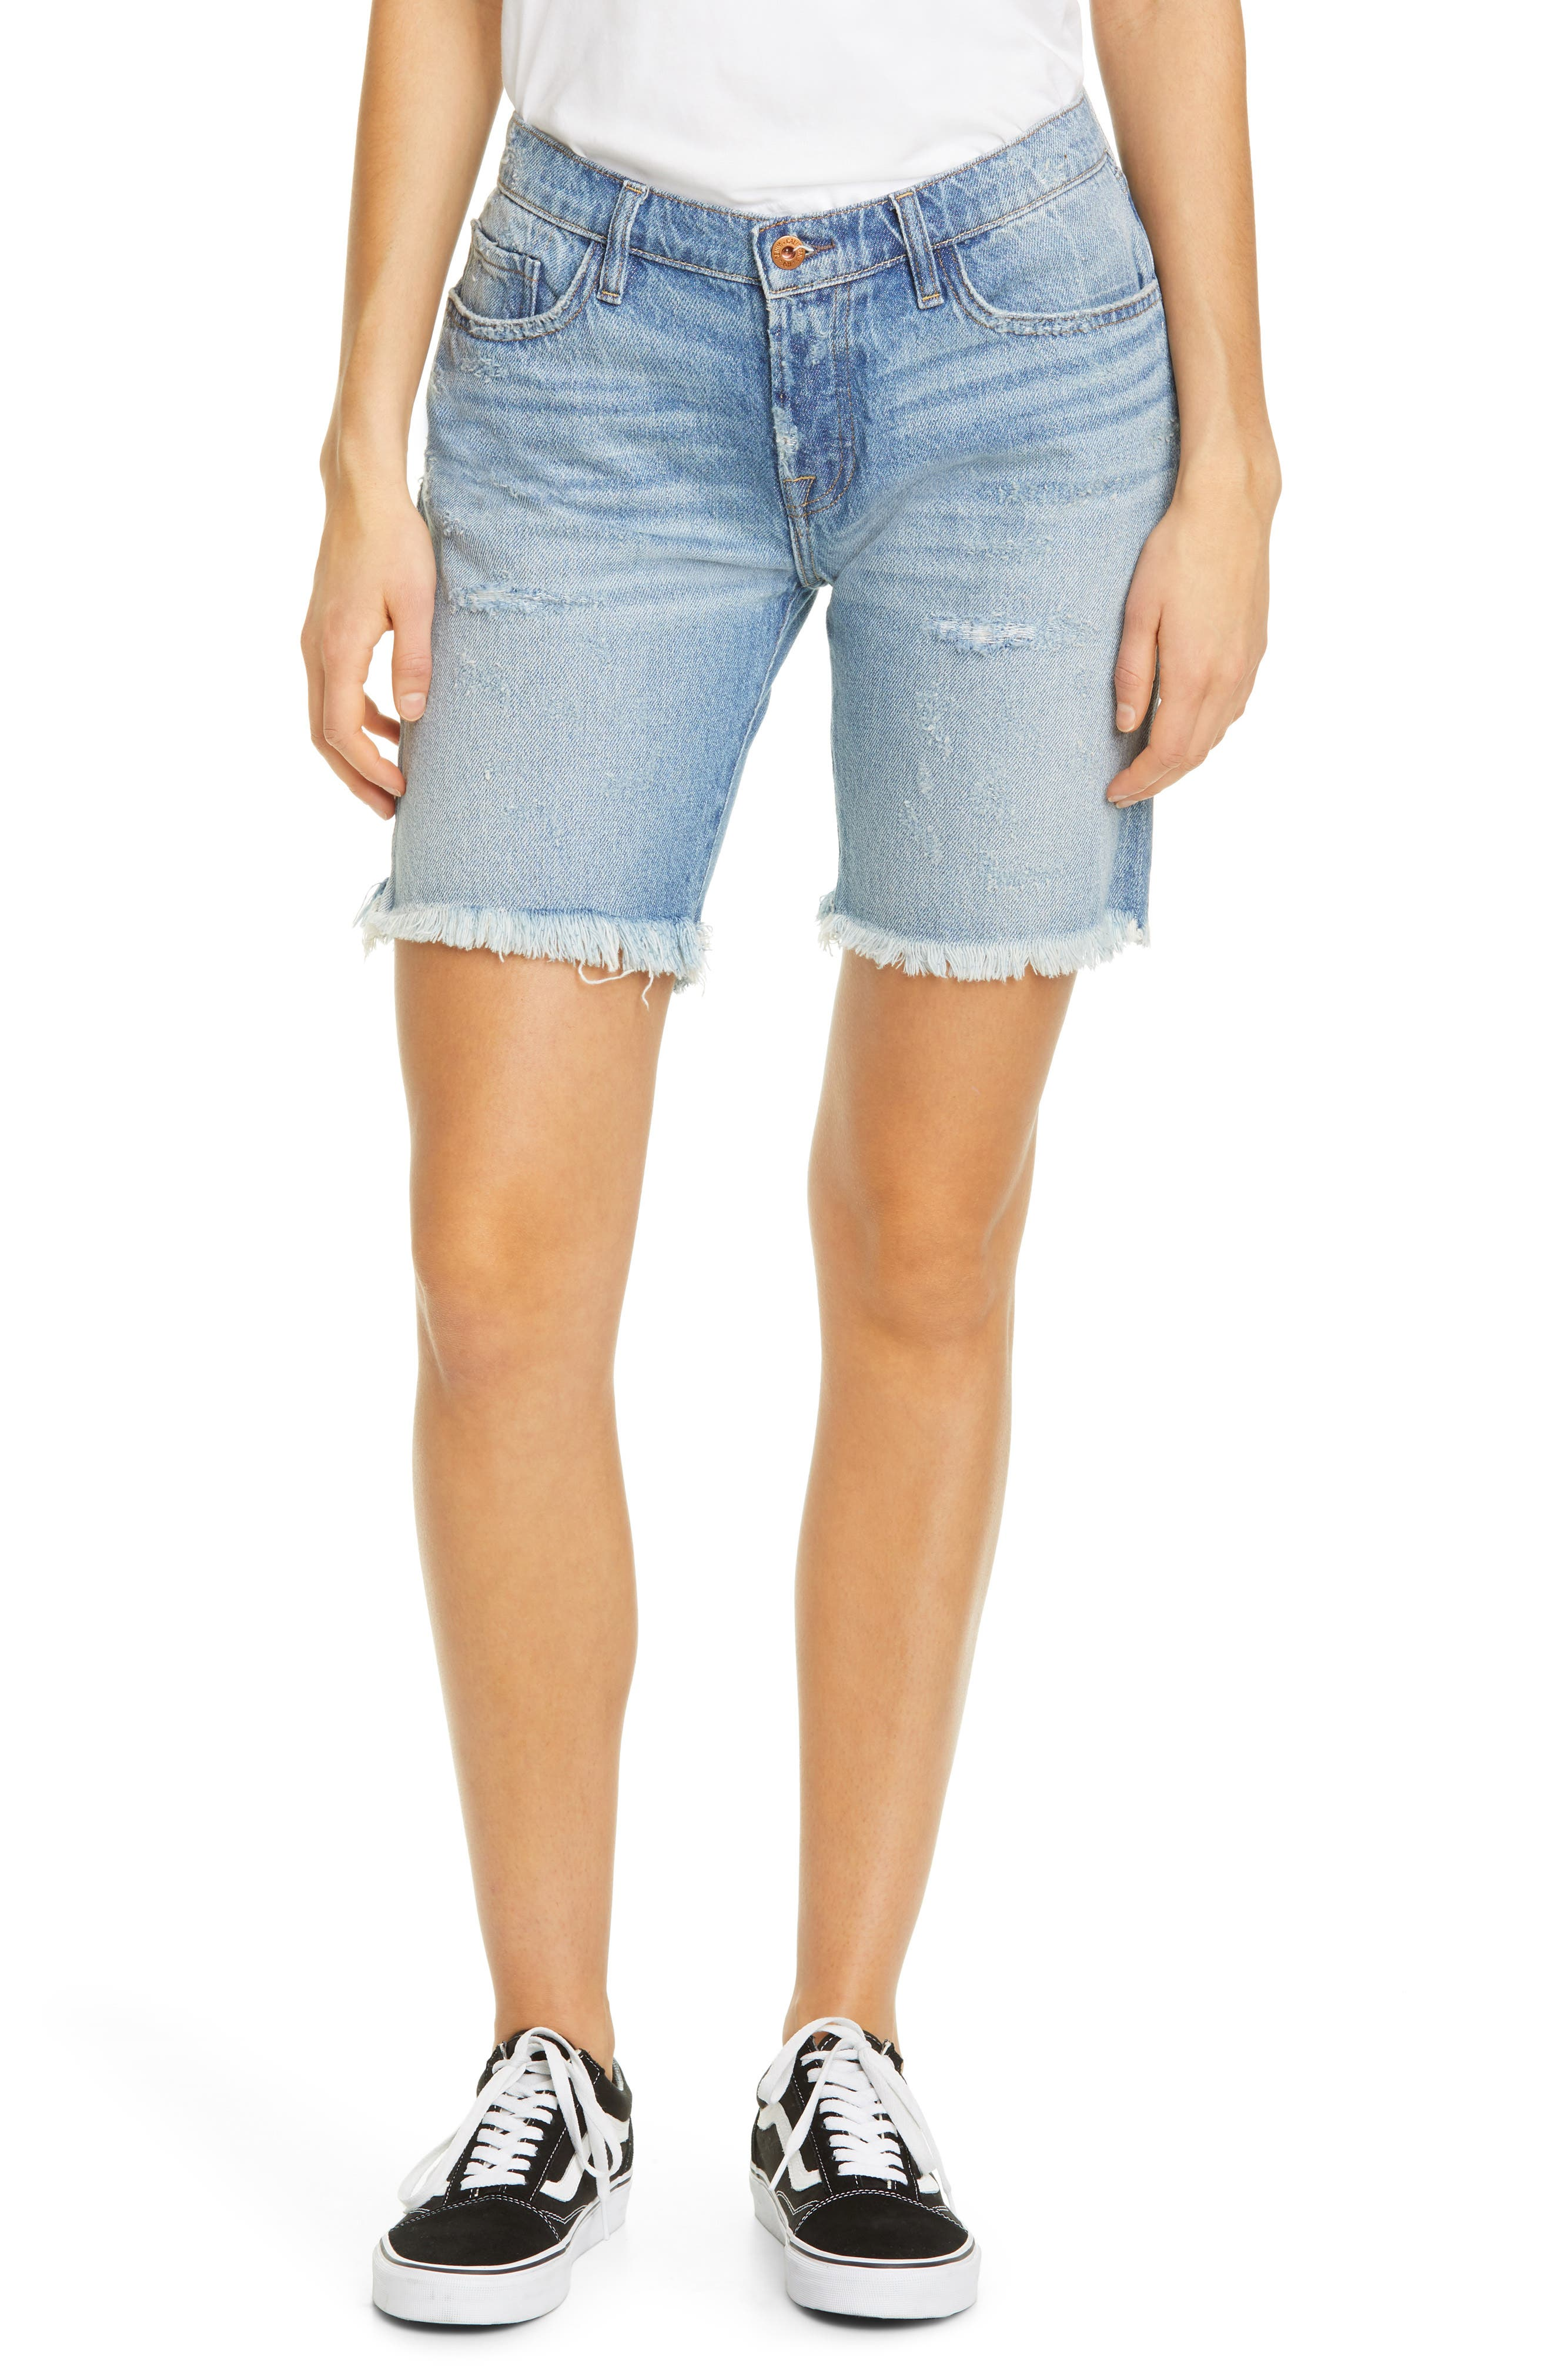 Image of NSF CLOTHING Jane Denim Shorts